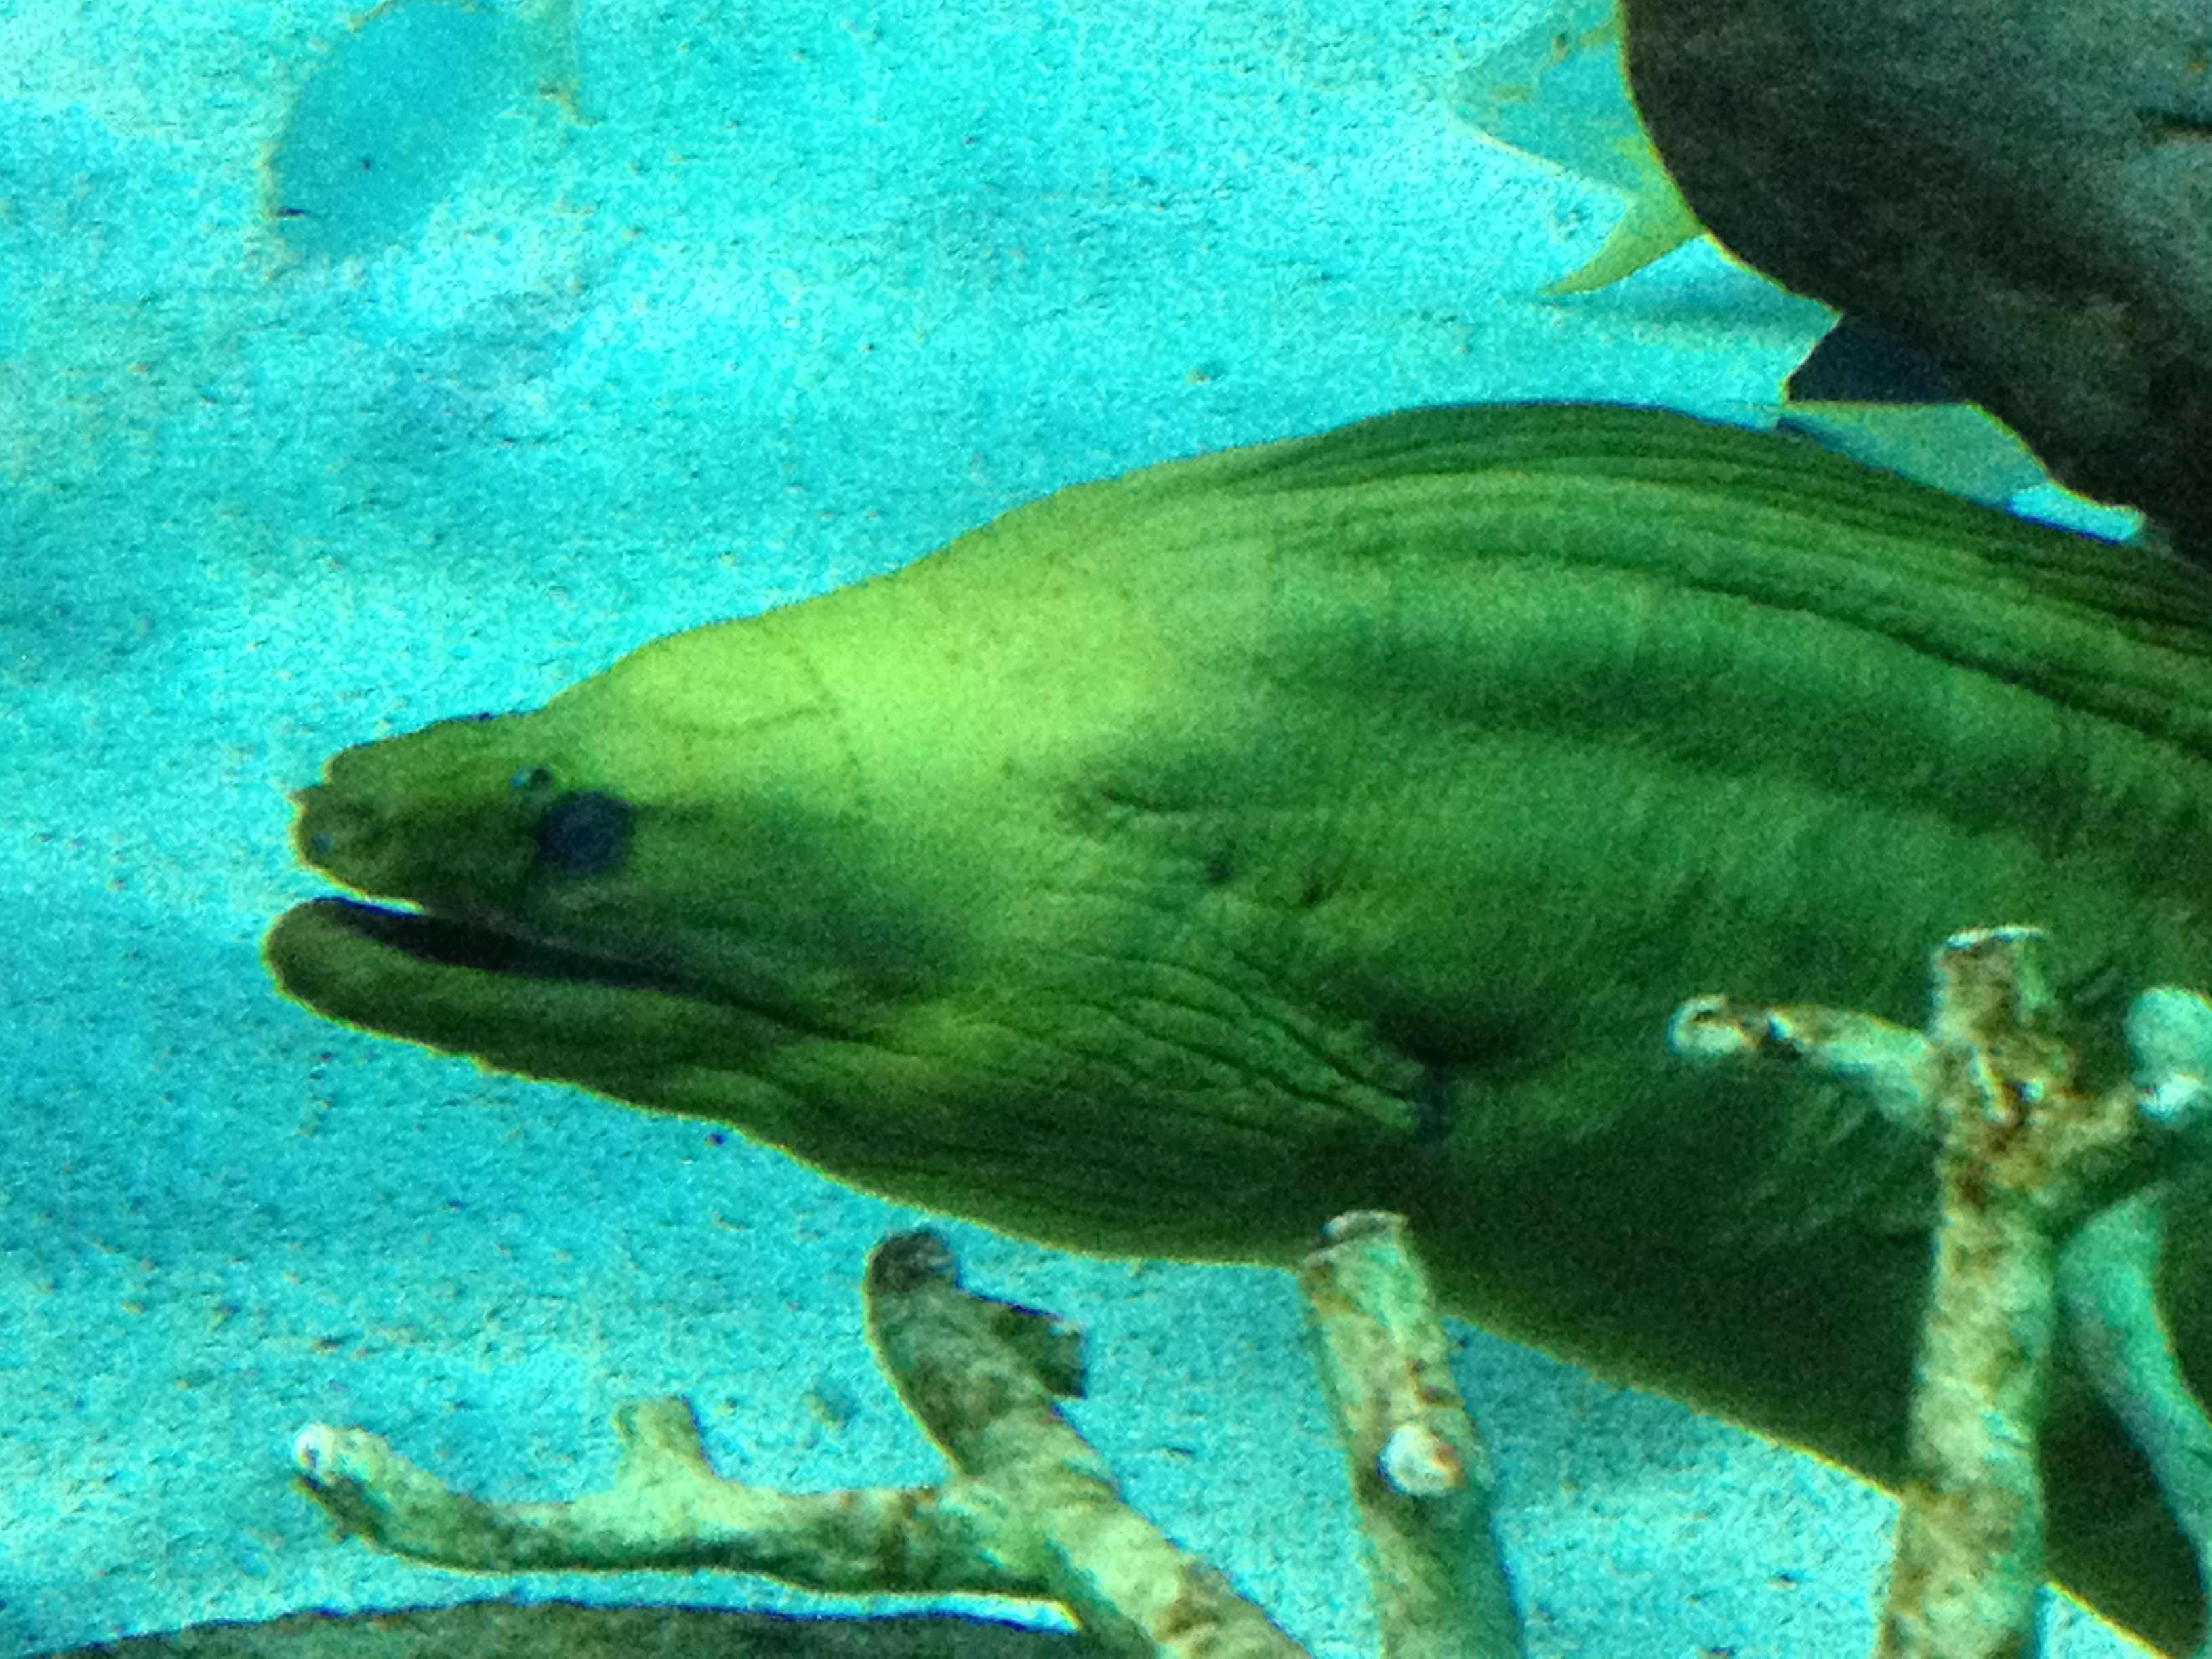 Morray Eel Ripleys Aquarium In Myrtle Beach